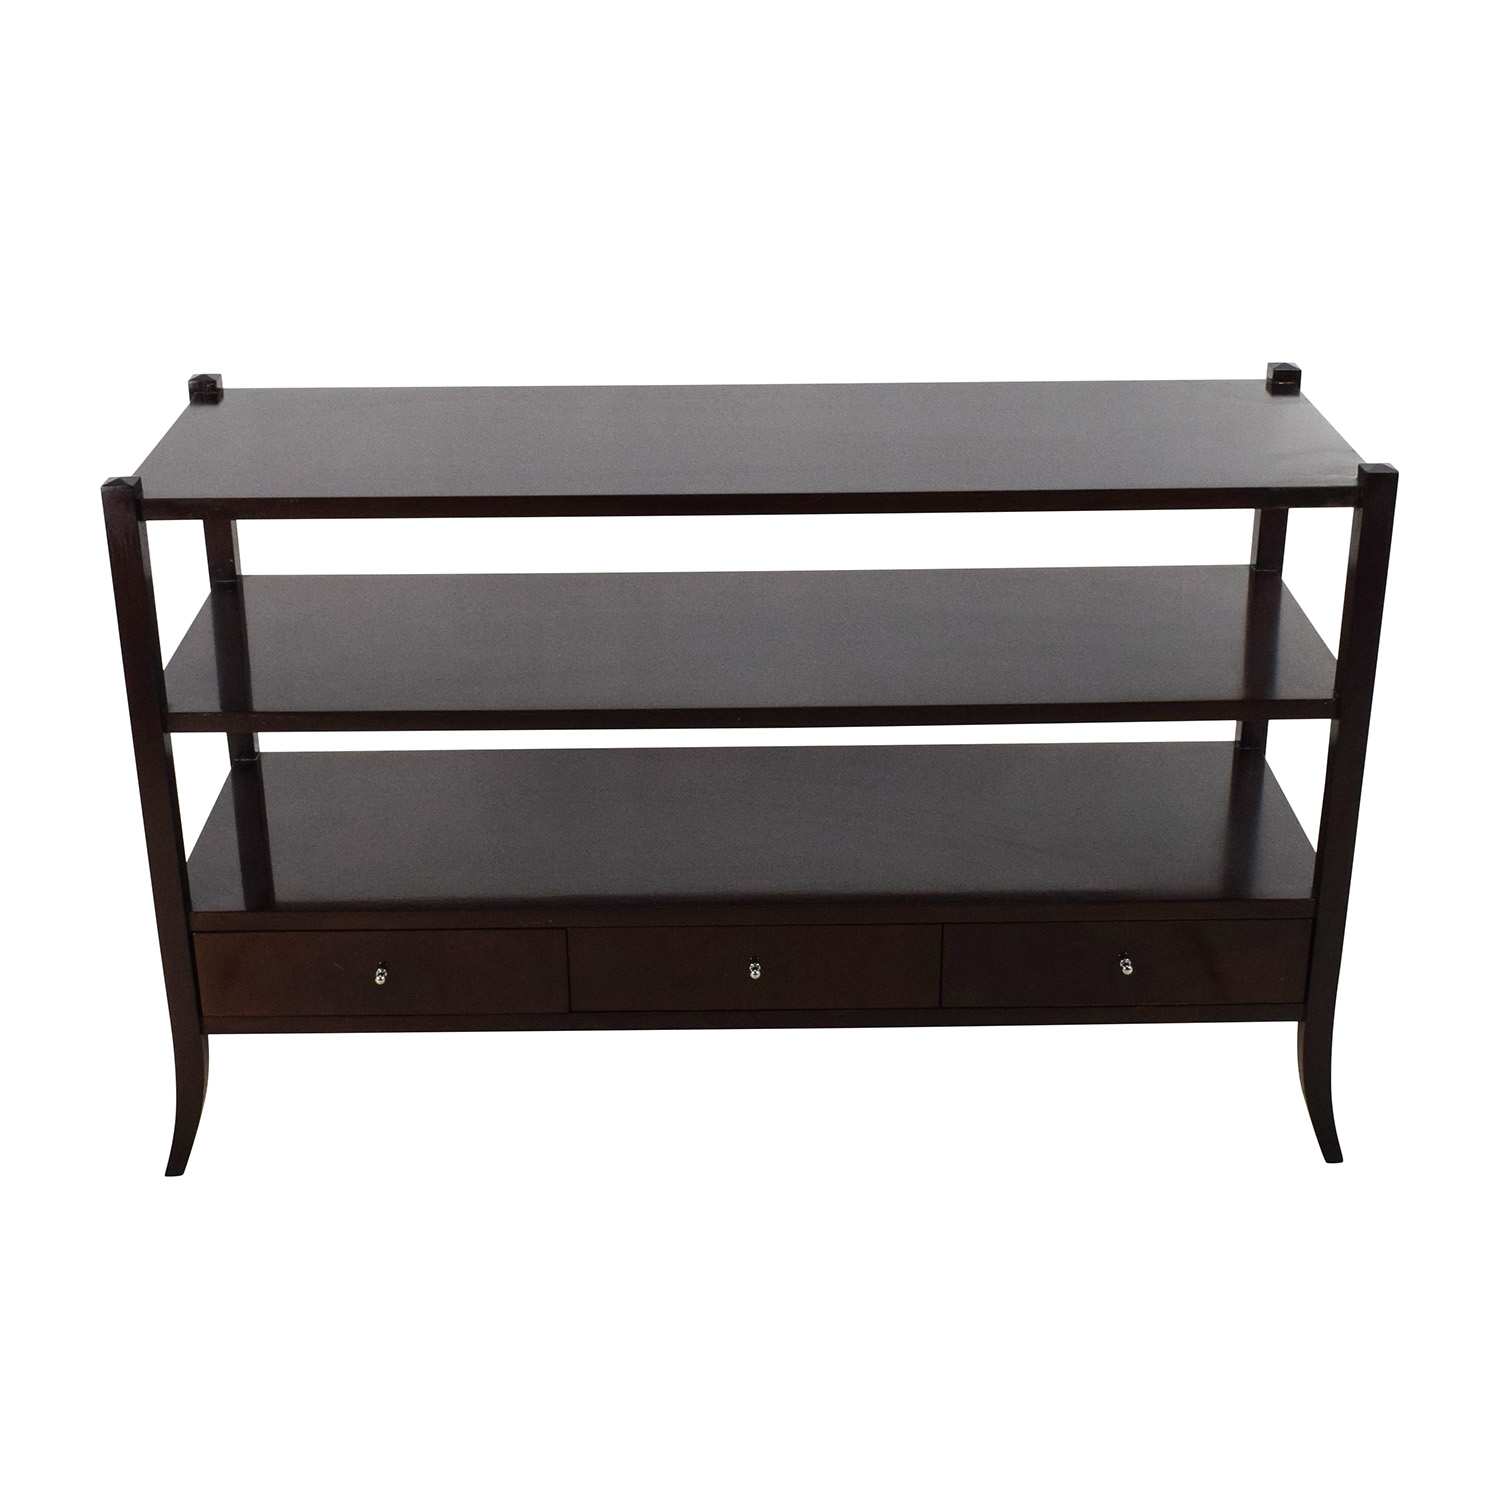 59 off west elm west elm parsons buffet storage for Side table for sectional sofa